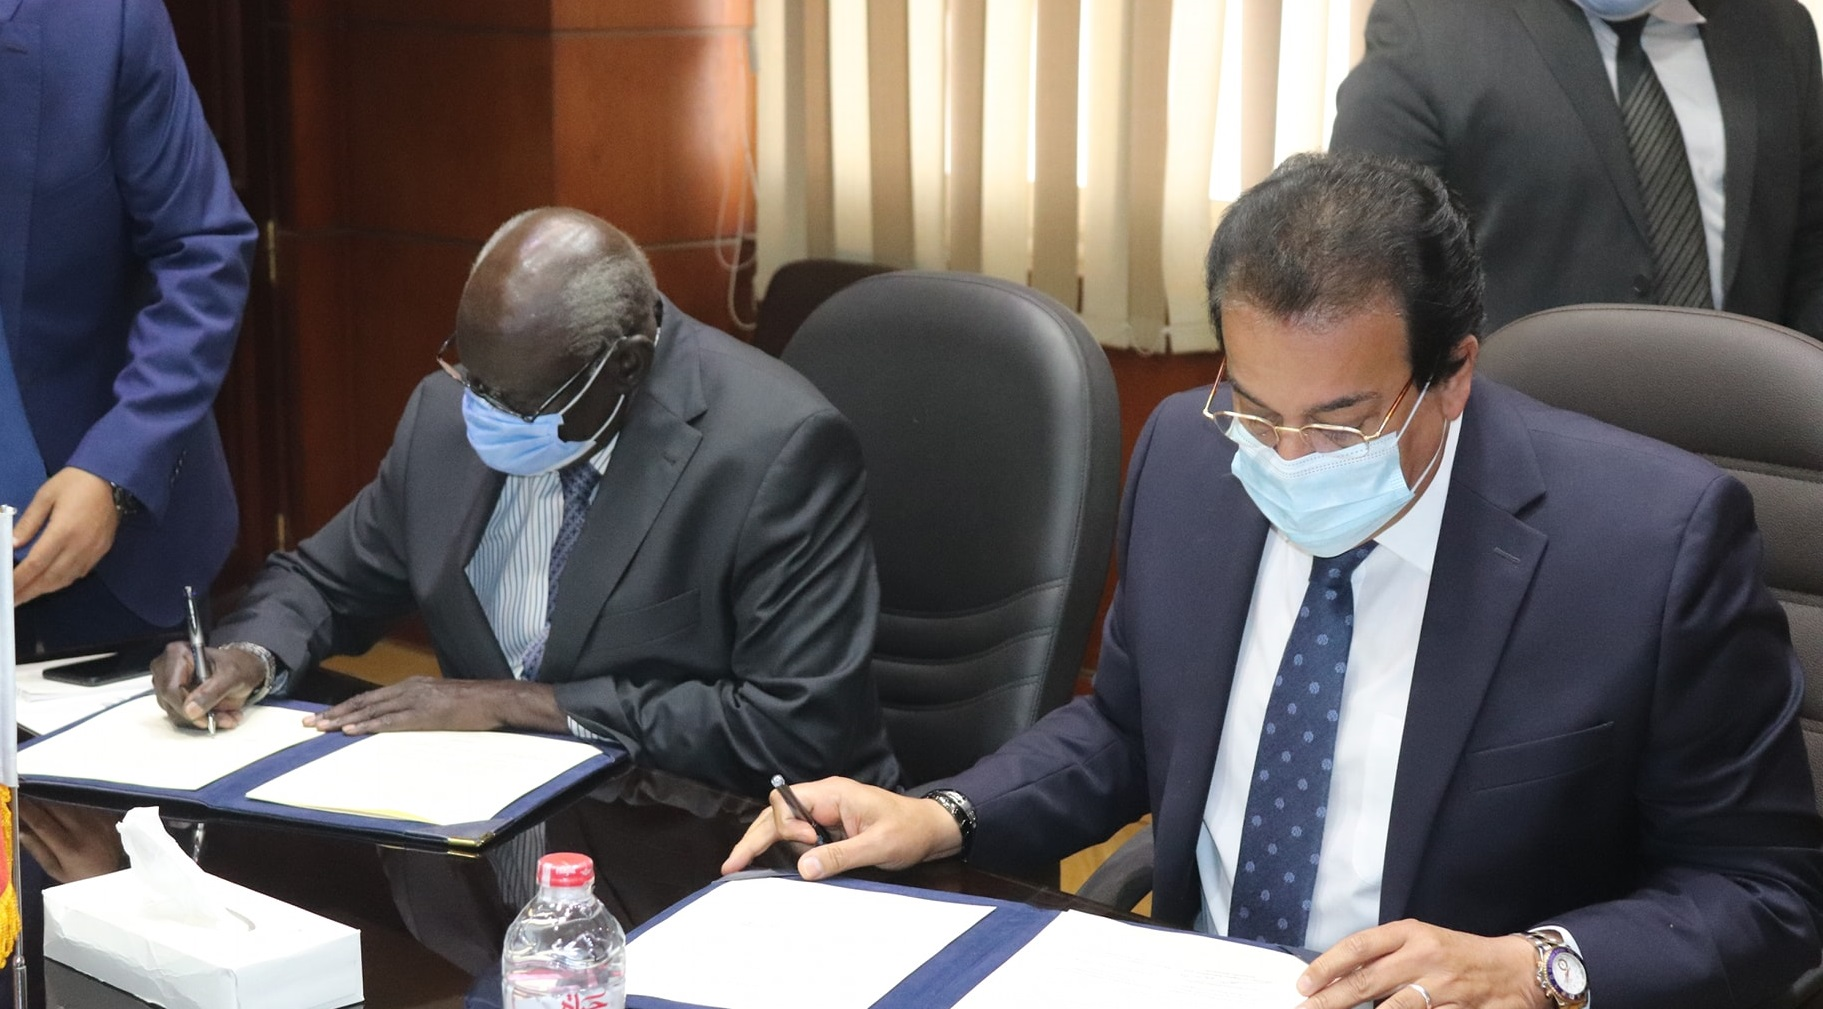 South Sudan minister of higher education Gabriel Changson Lew Chang (left) signing a number of agreements with his Egyptian counterparts on education in Cairo on October 24, 2020 [Photo by Sudans Post]